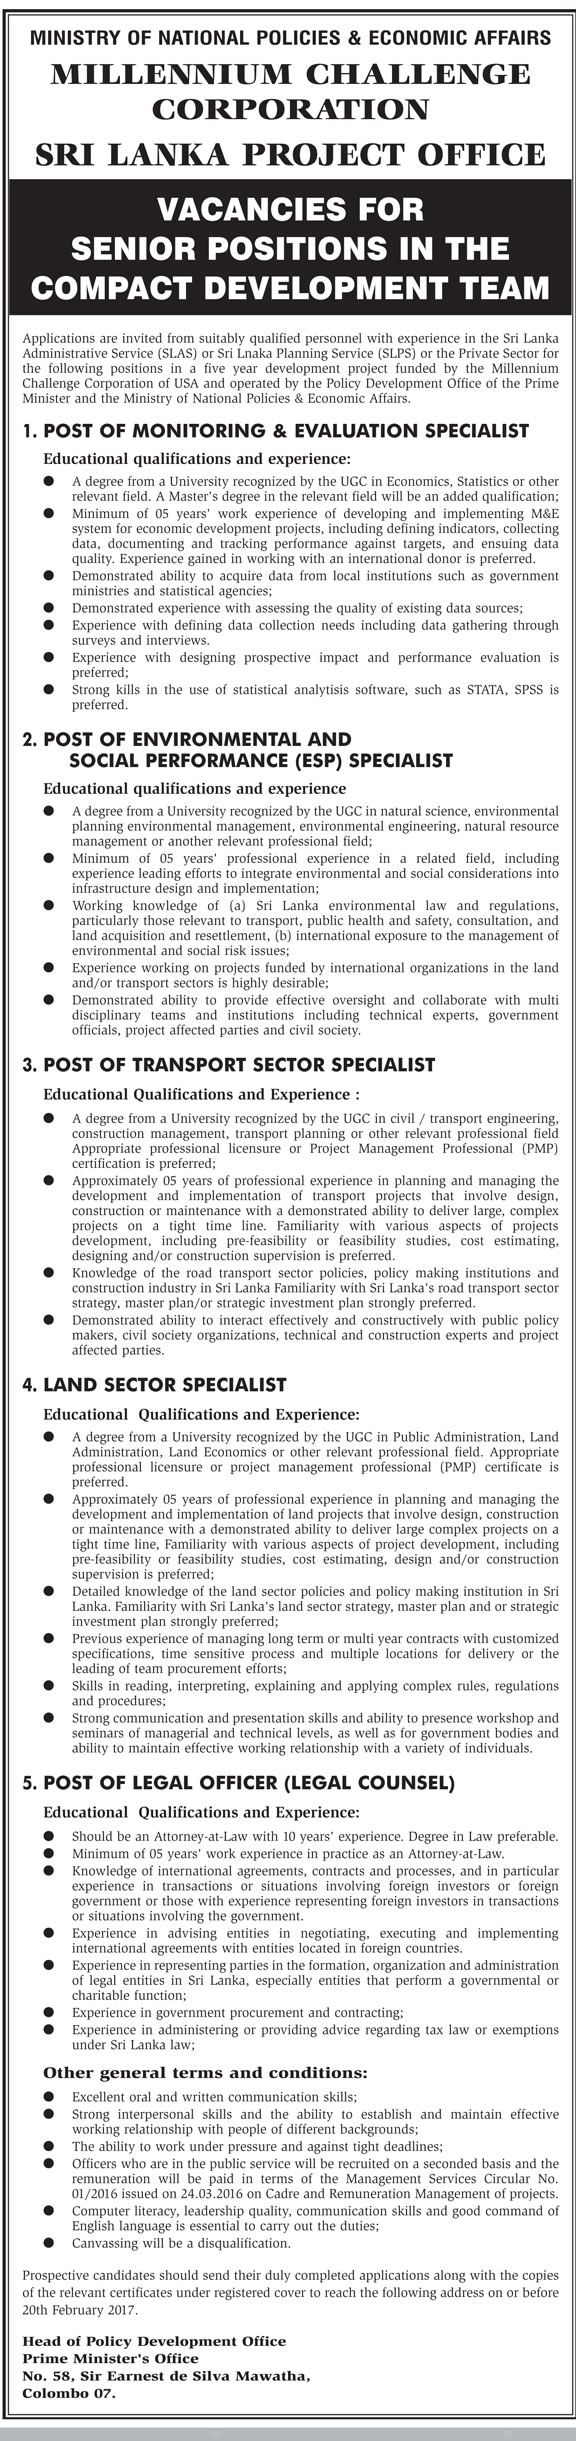 Monitoring & Evaluation Specialist, Environmental & Social Performance (ESP) Specialist, Transport Sector Specialist, Land Sector Specialist, Legal Officer at Ministry of National Policies & Economic Affairs | Career First